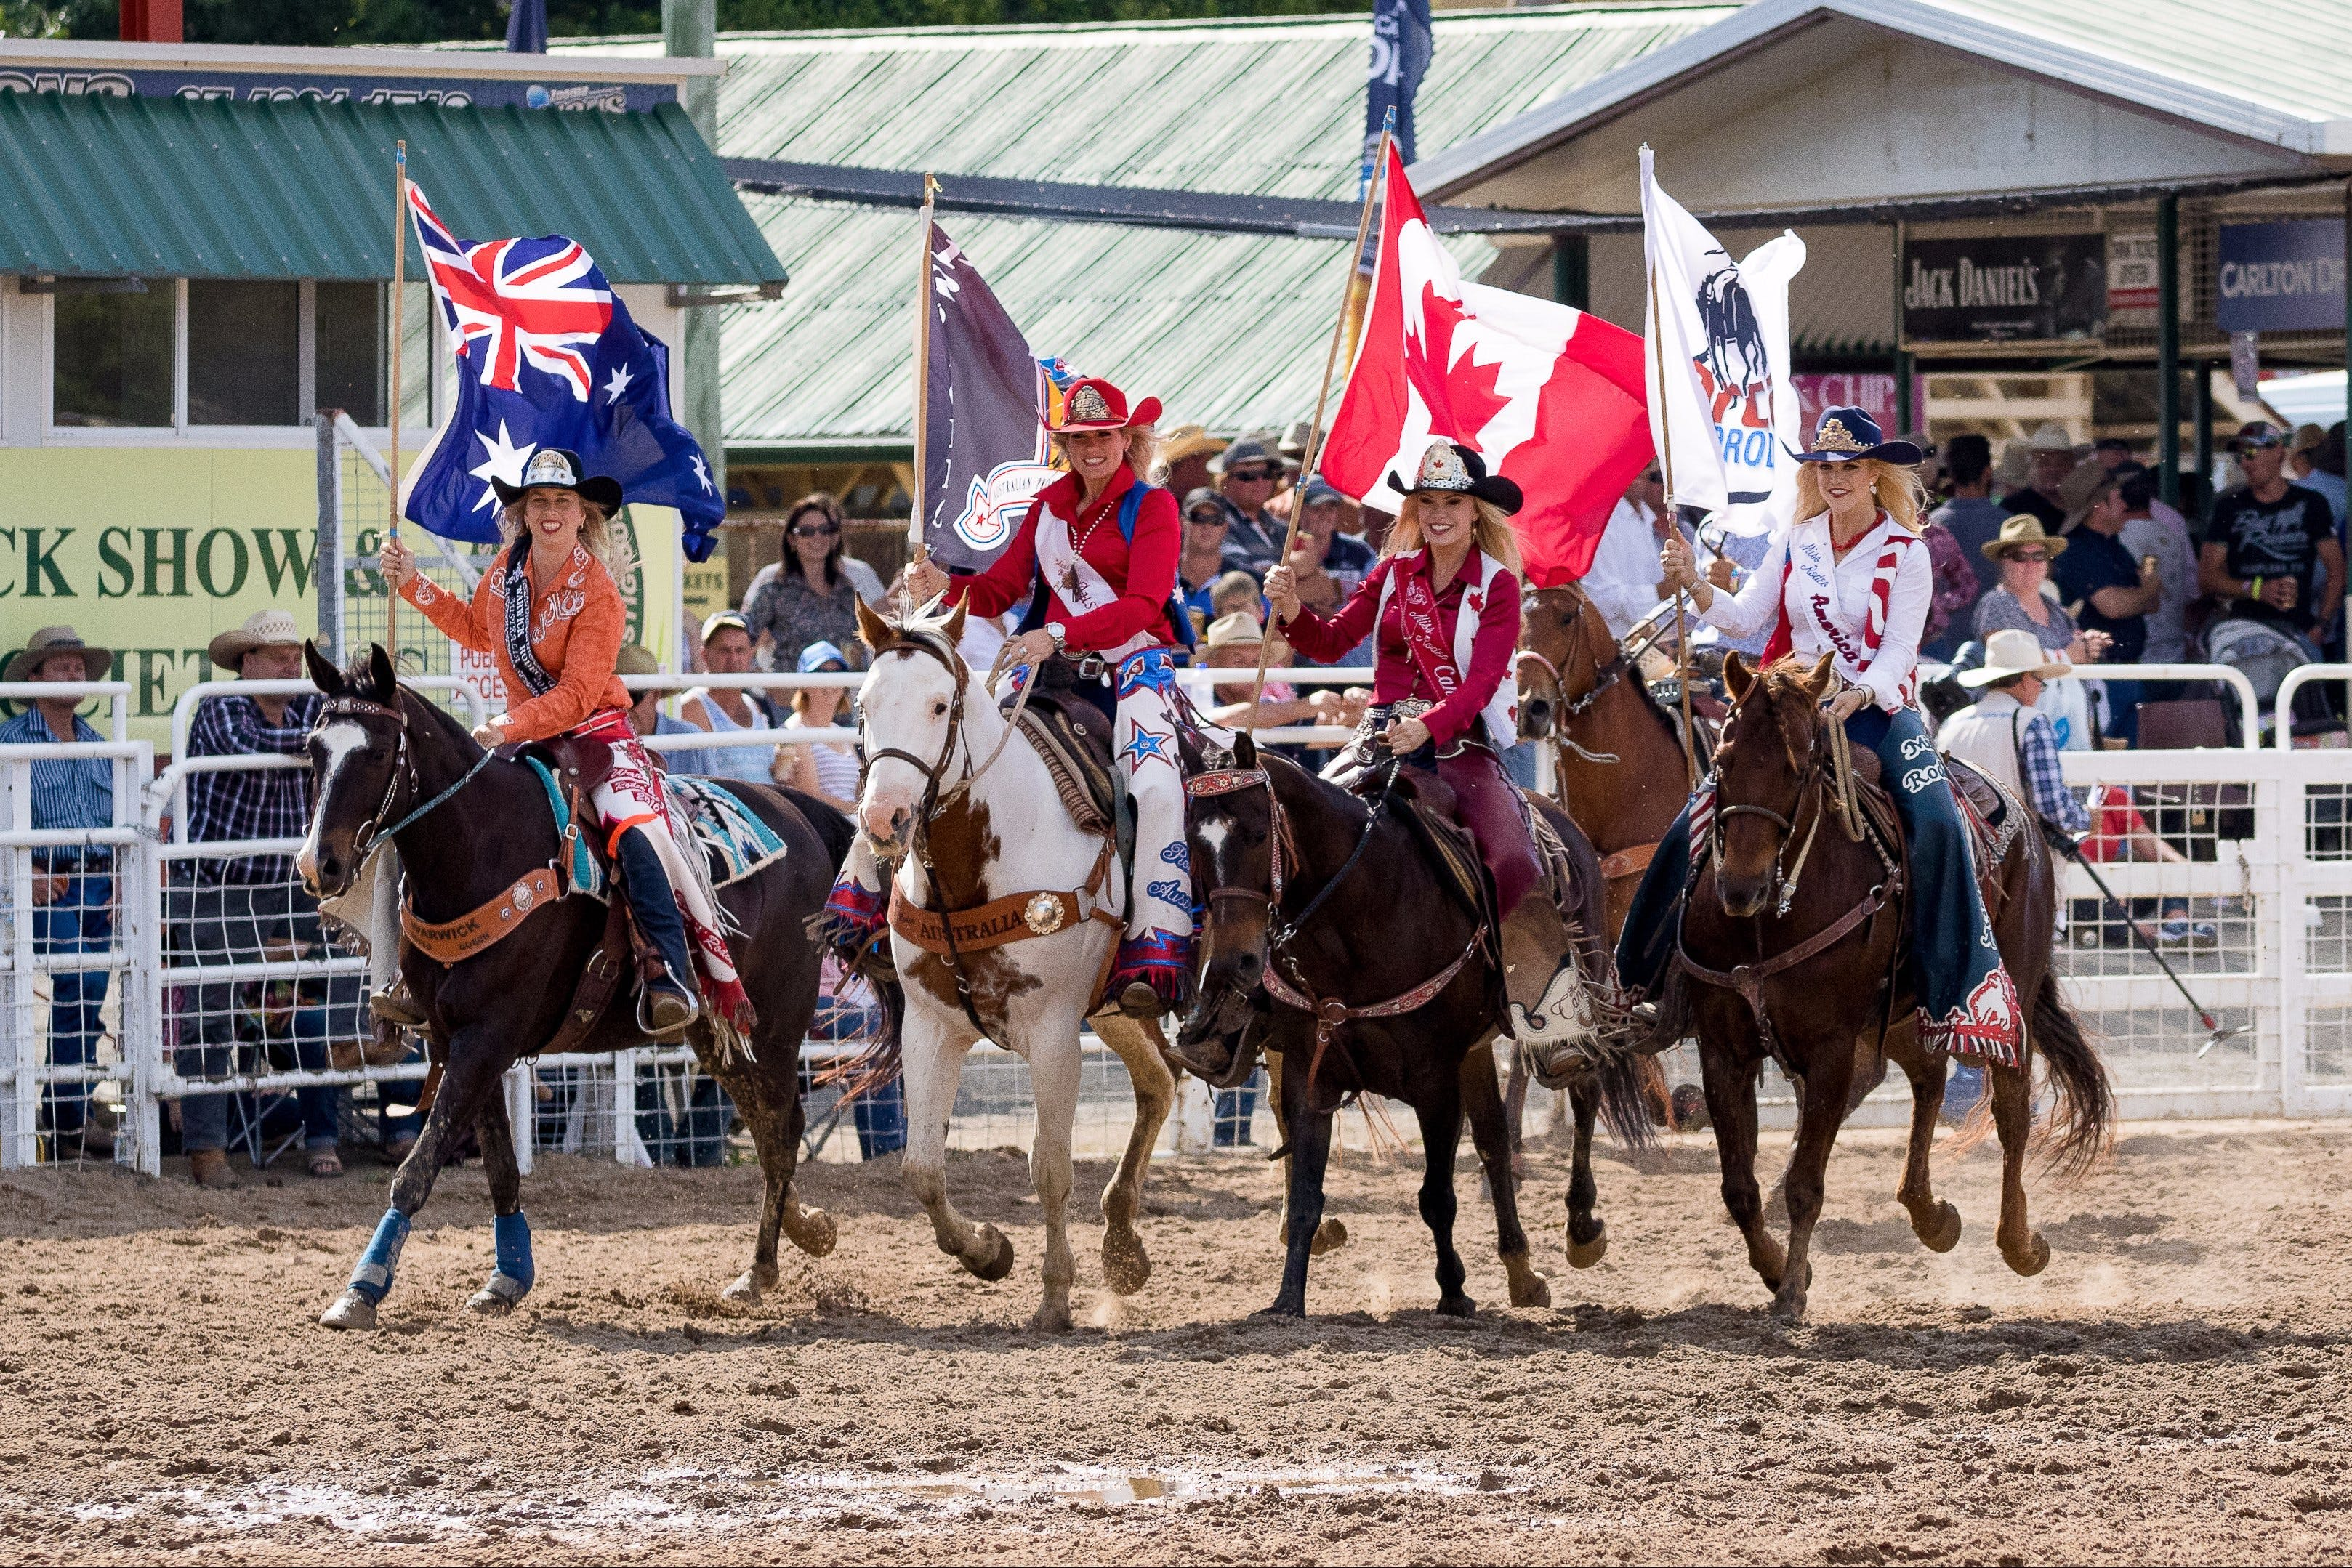 Warwick Rodeo National APRA National Finals and Warwick Gold Cup Campdraft - QLD Tourism